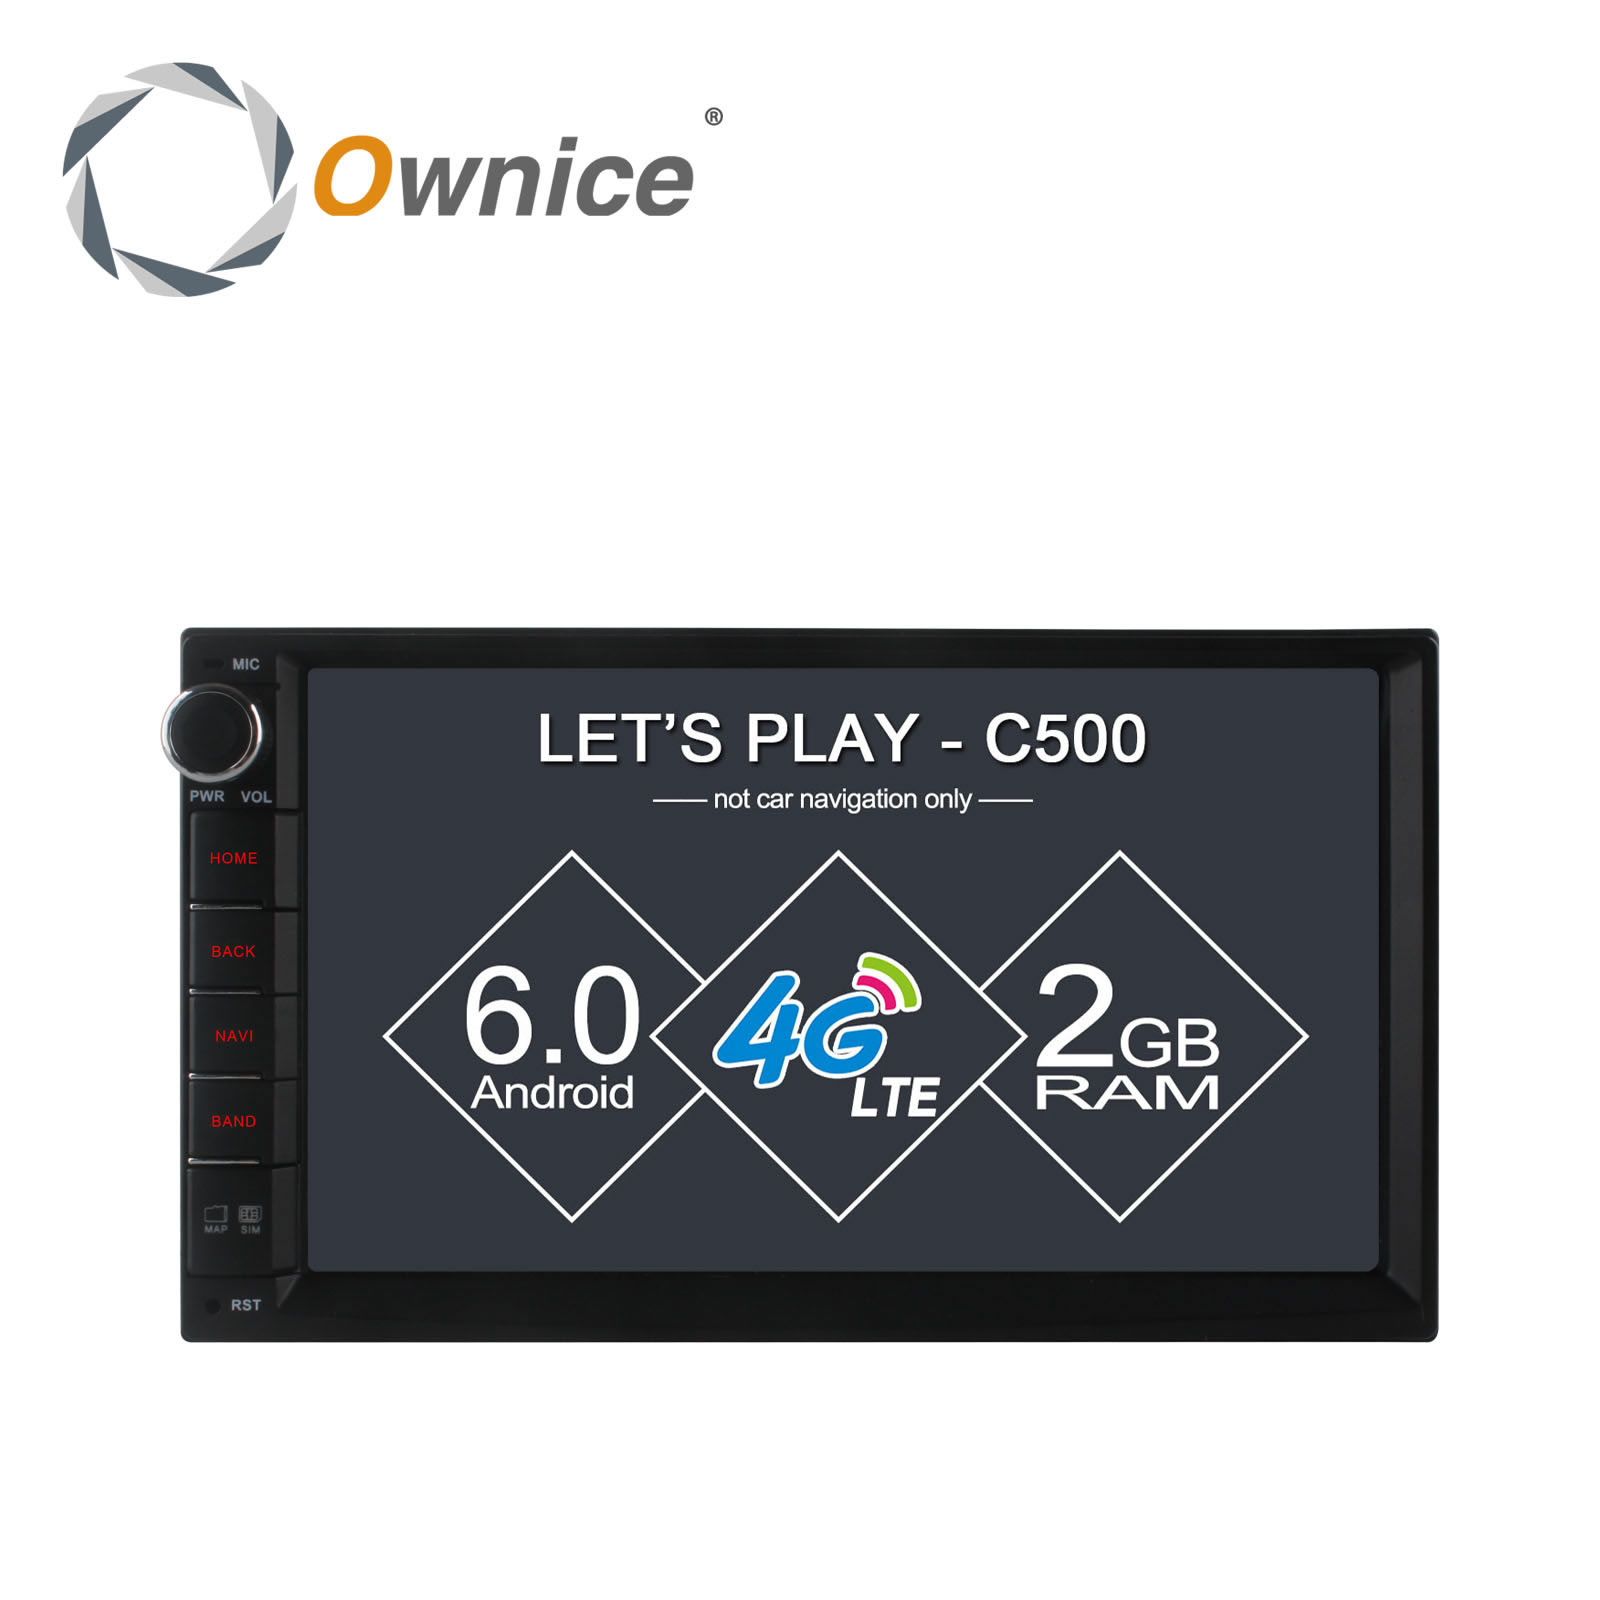 Ownice C500 7 1024*600 Android 6.0 quad core Radio 2 din universal car radio Player GPS no dvd support 4G LTE Network DAB+ TPMS автомобильный dvd плеер joyous kd 7 800 480 2 din 4 4 gps navi toyota rav4 4 4 dvd dual core rds wifi 3g